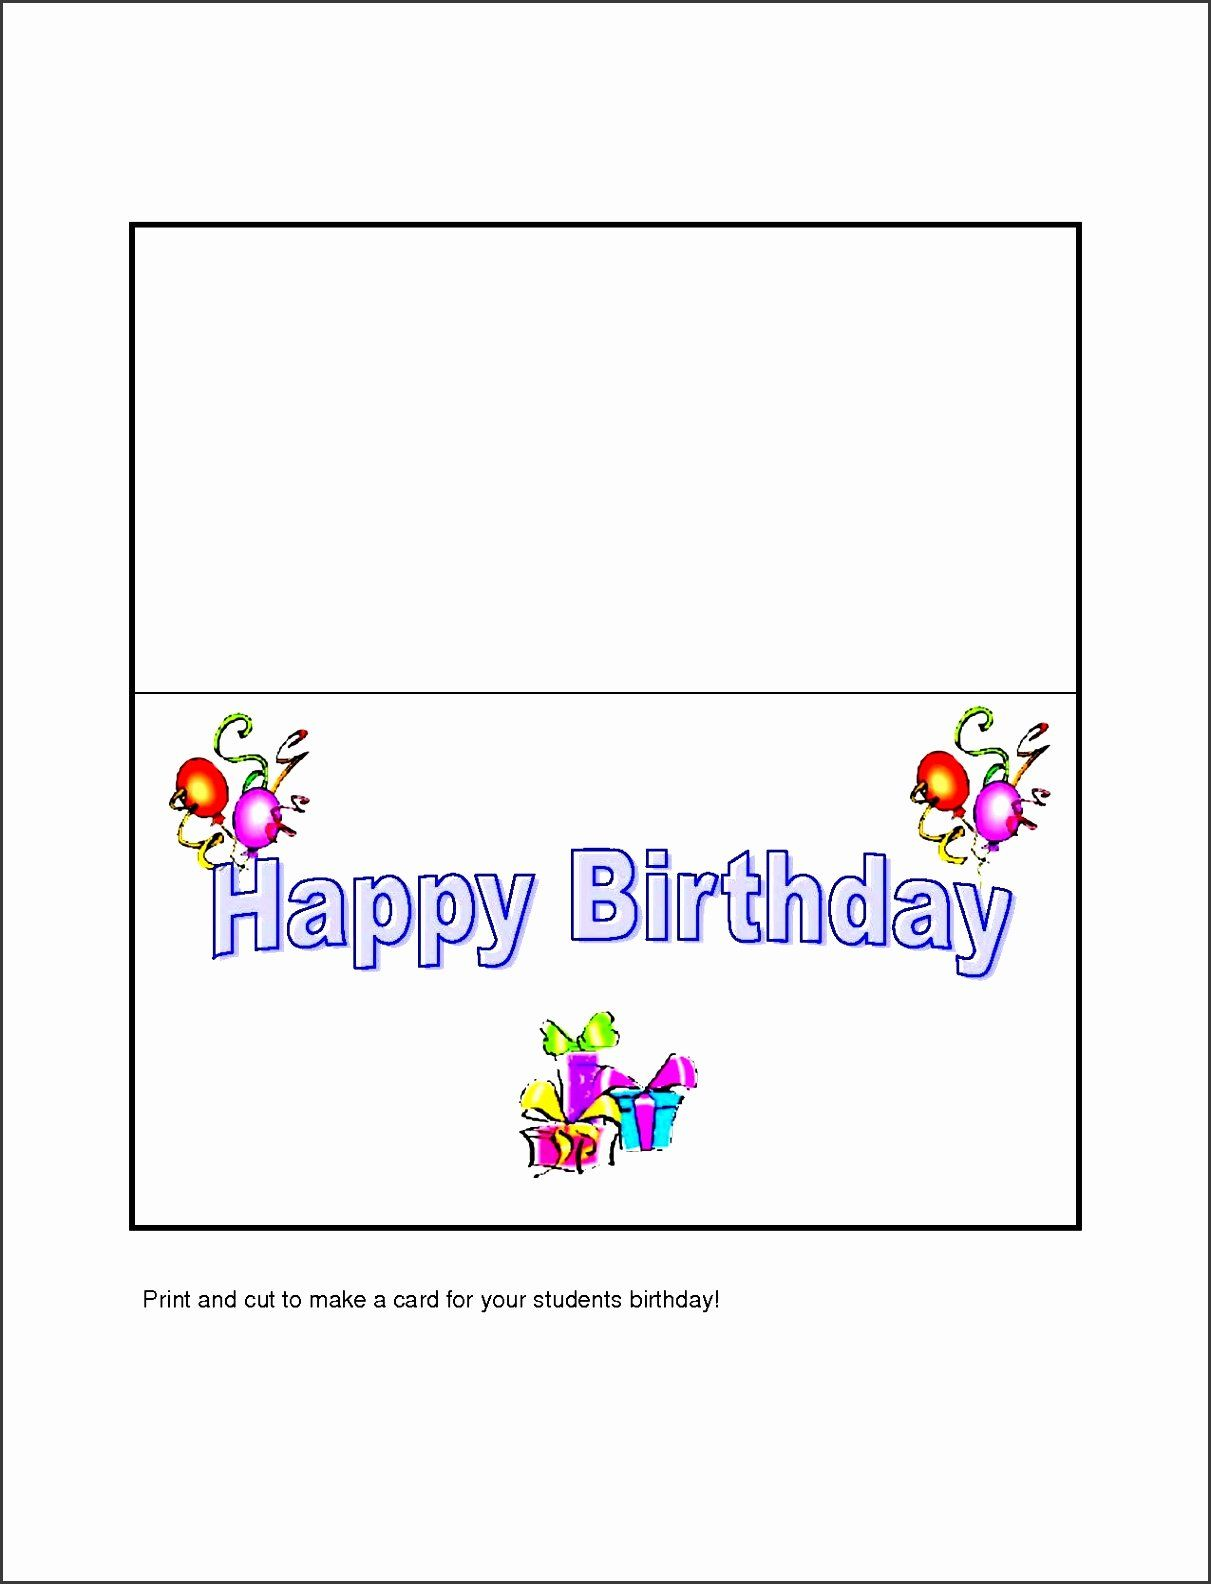 24 Microsoft Word Birthday Card Templates In 2020 Greeting